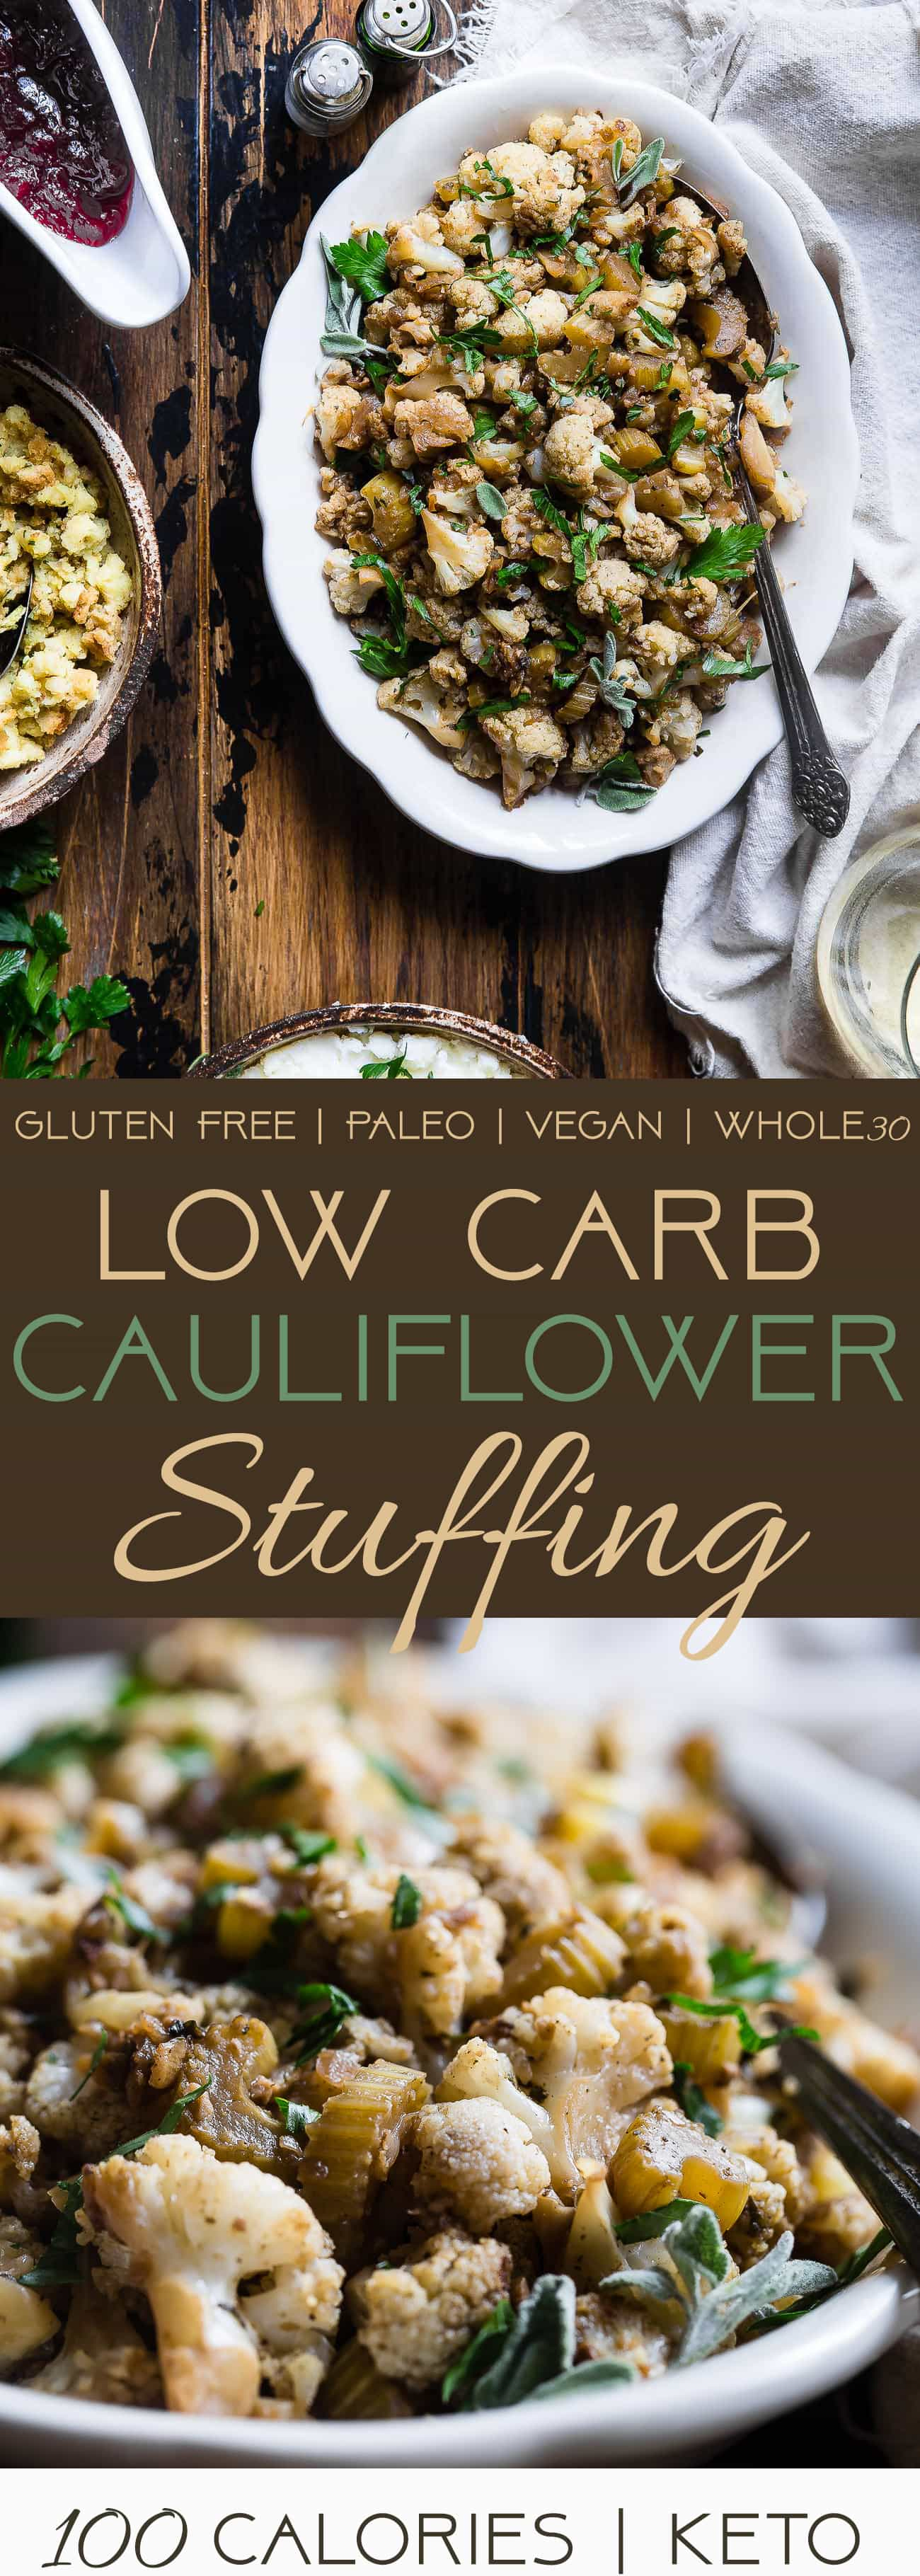 Low Carb Cauliflower Stuffing - Made entirely from vegetables but has all the flavor of traditional bread stuffing! It's super easy, whole30 compliant, paleo, vegan, gluten free and SO delicious! Perfect for Thanksgiving or Christmas! | Foodfaithfitness.com | @FoodFaithFit | low carb stuffing for turkey. Keto stuffing. Paleo stuffing. Low carb thanksgiving recipes. Low carb side dishes. low carb stuffing with cauliflower. grain free stuffing. gluten free stuffing. Healthy thanksgiving recipes.